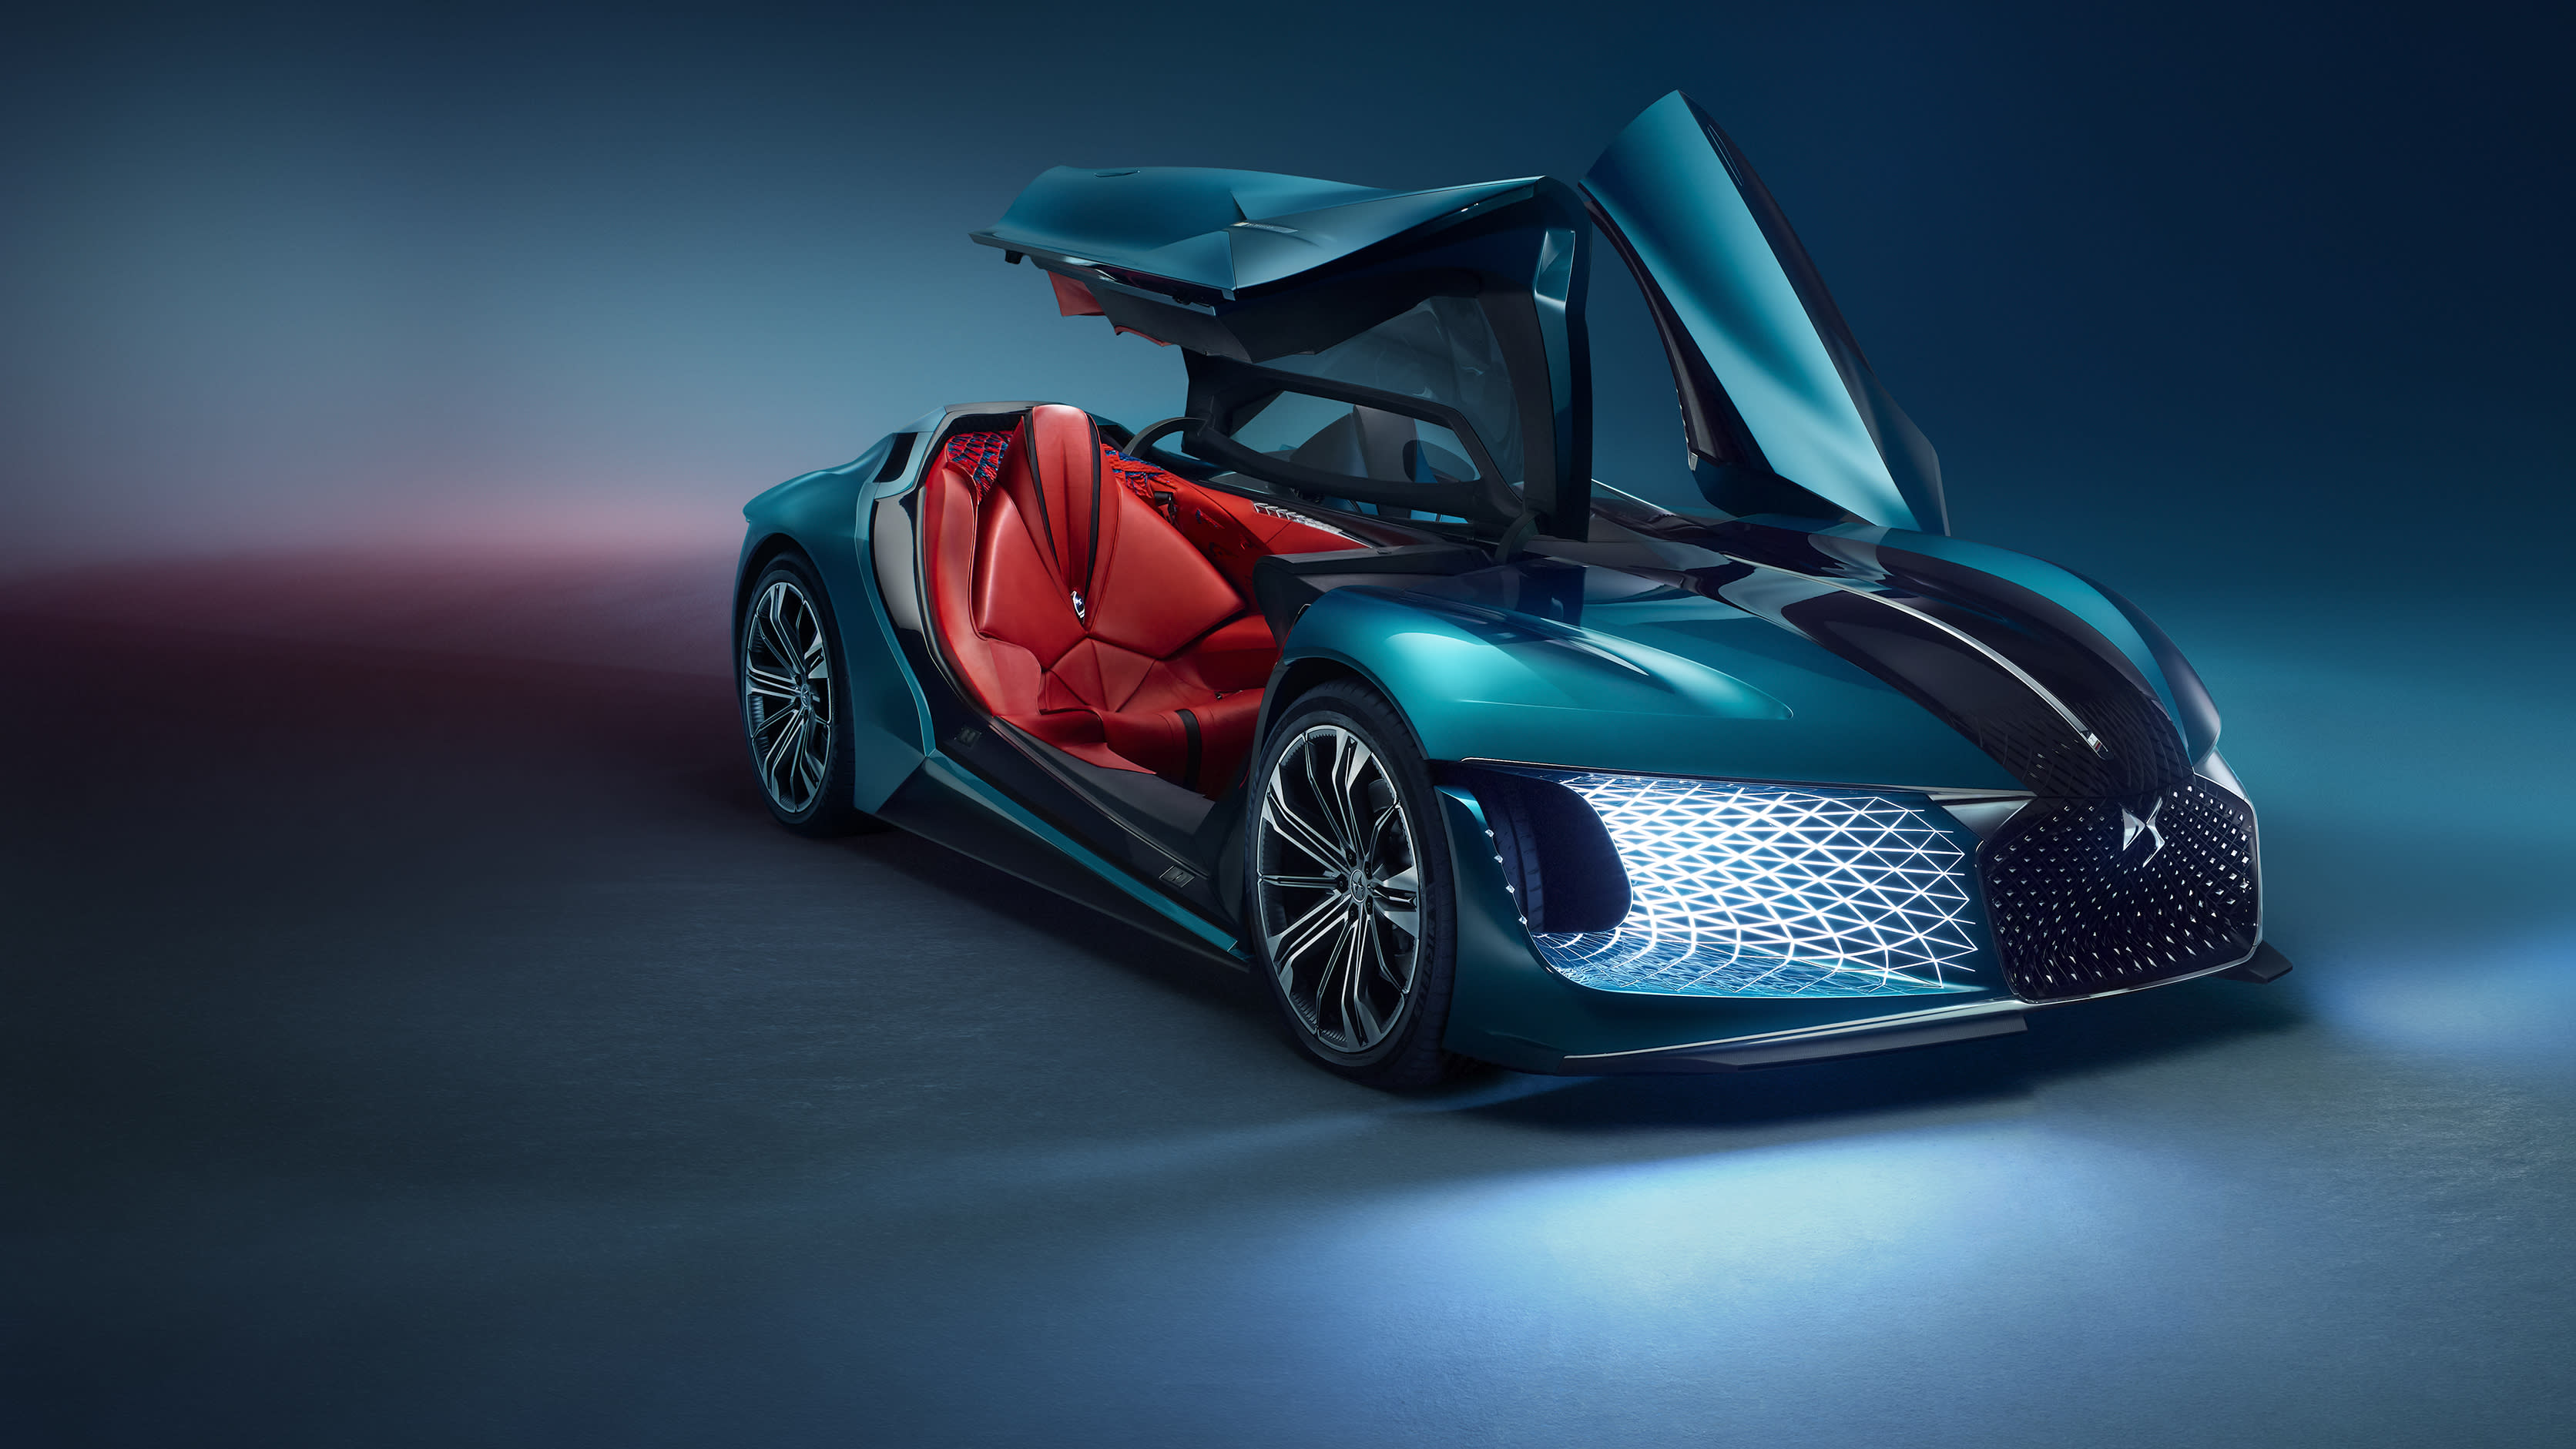 peugeot s new concept car includes feathers and a nespresso machine. Black Bedroom Furniture Sets. Home Design Ideas